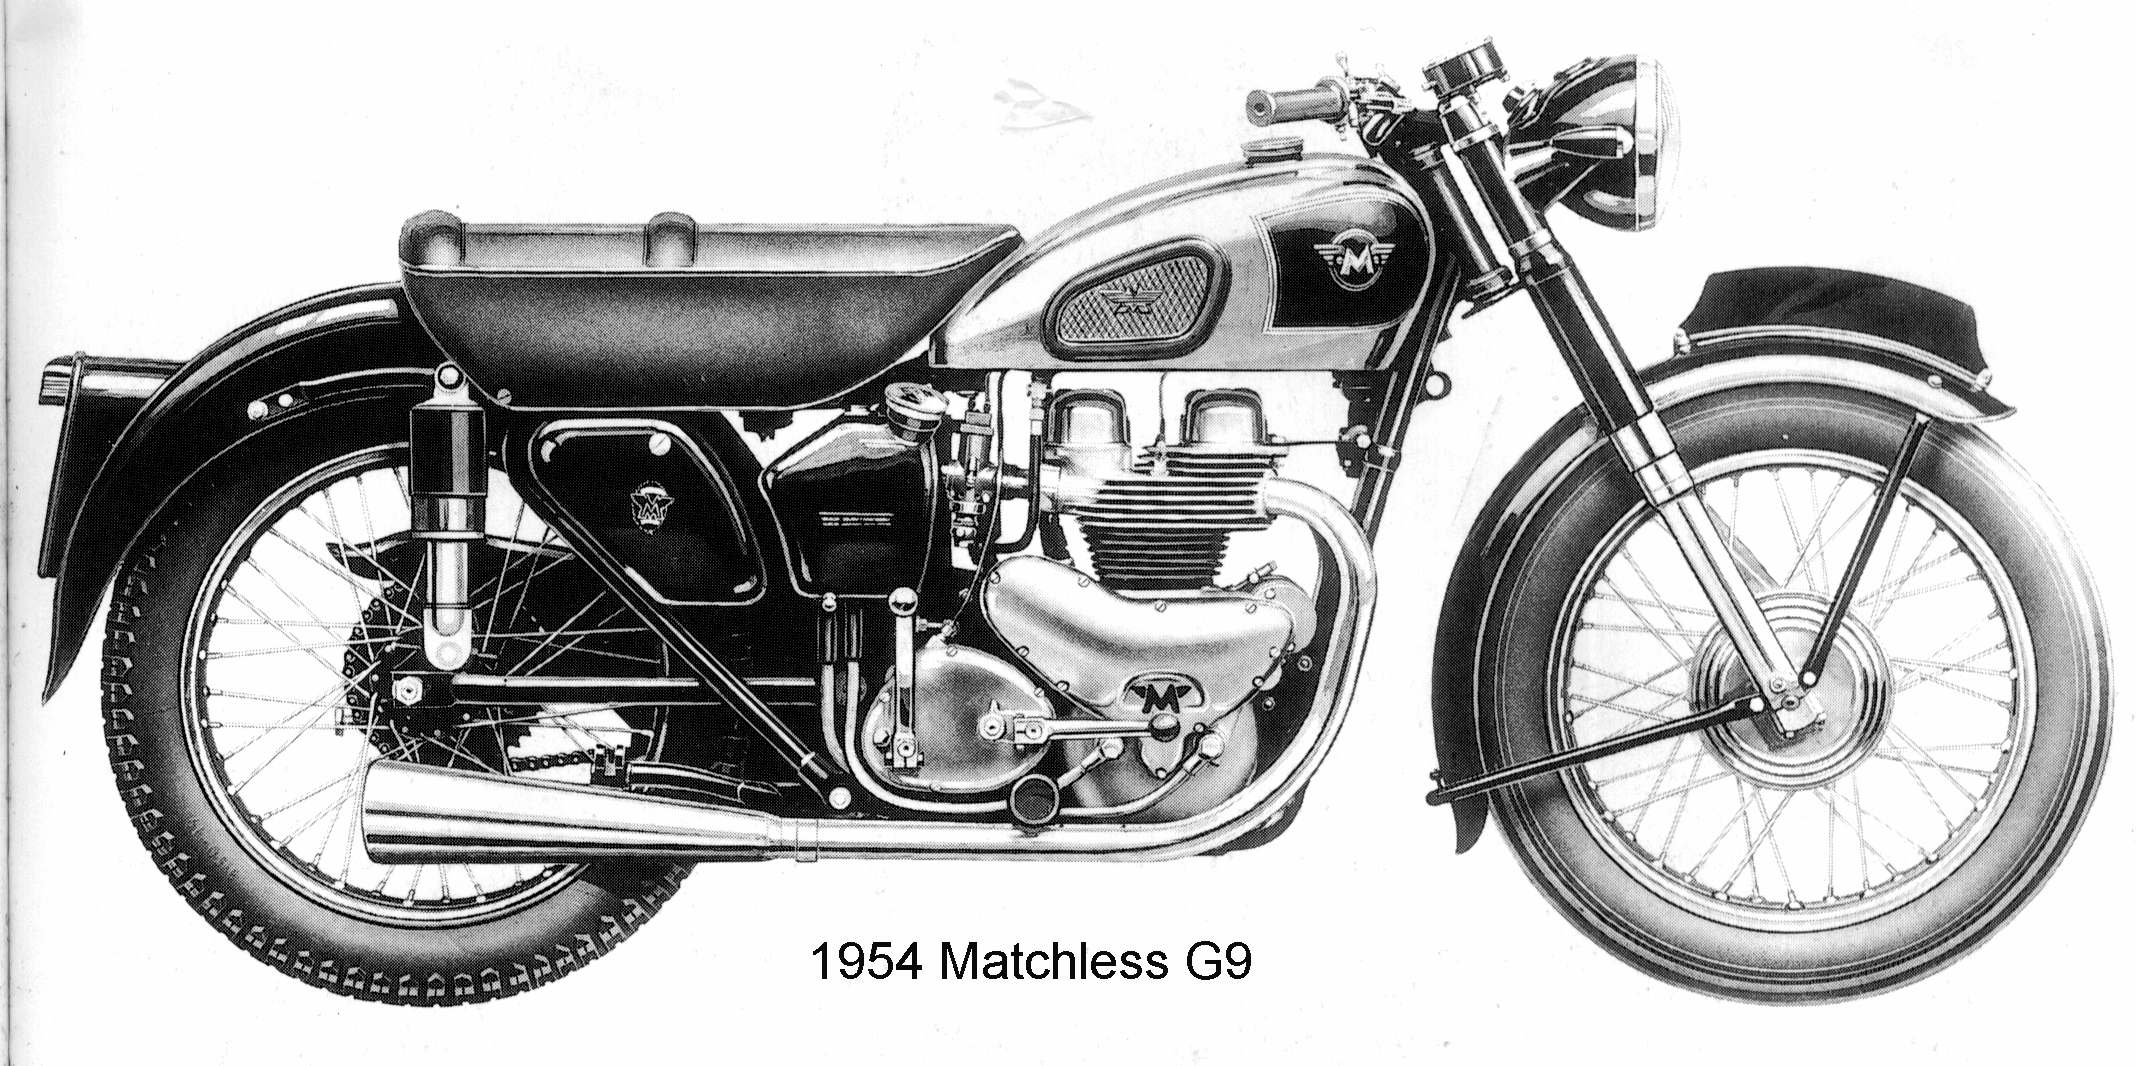 Matchless g 11 csr for sale 1958 on car and classic uk c544589 - 1954 Matchless G9 Jpg 2 136 1 066 Pixels